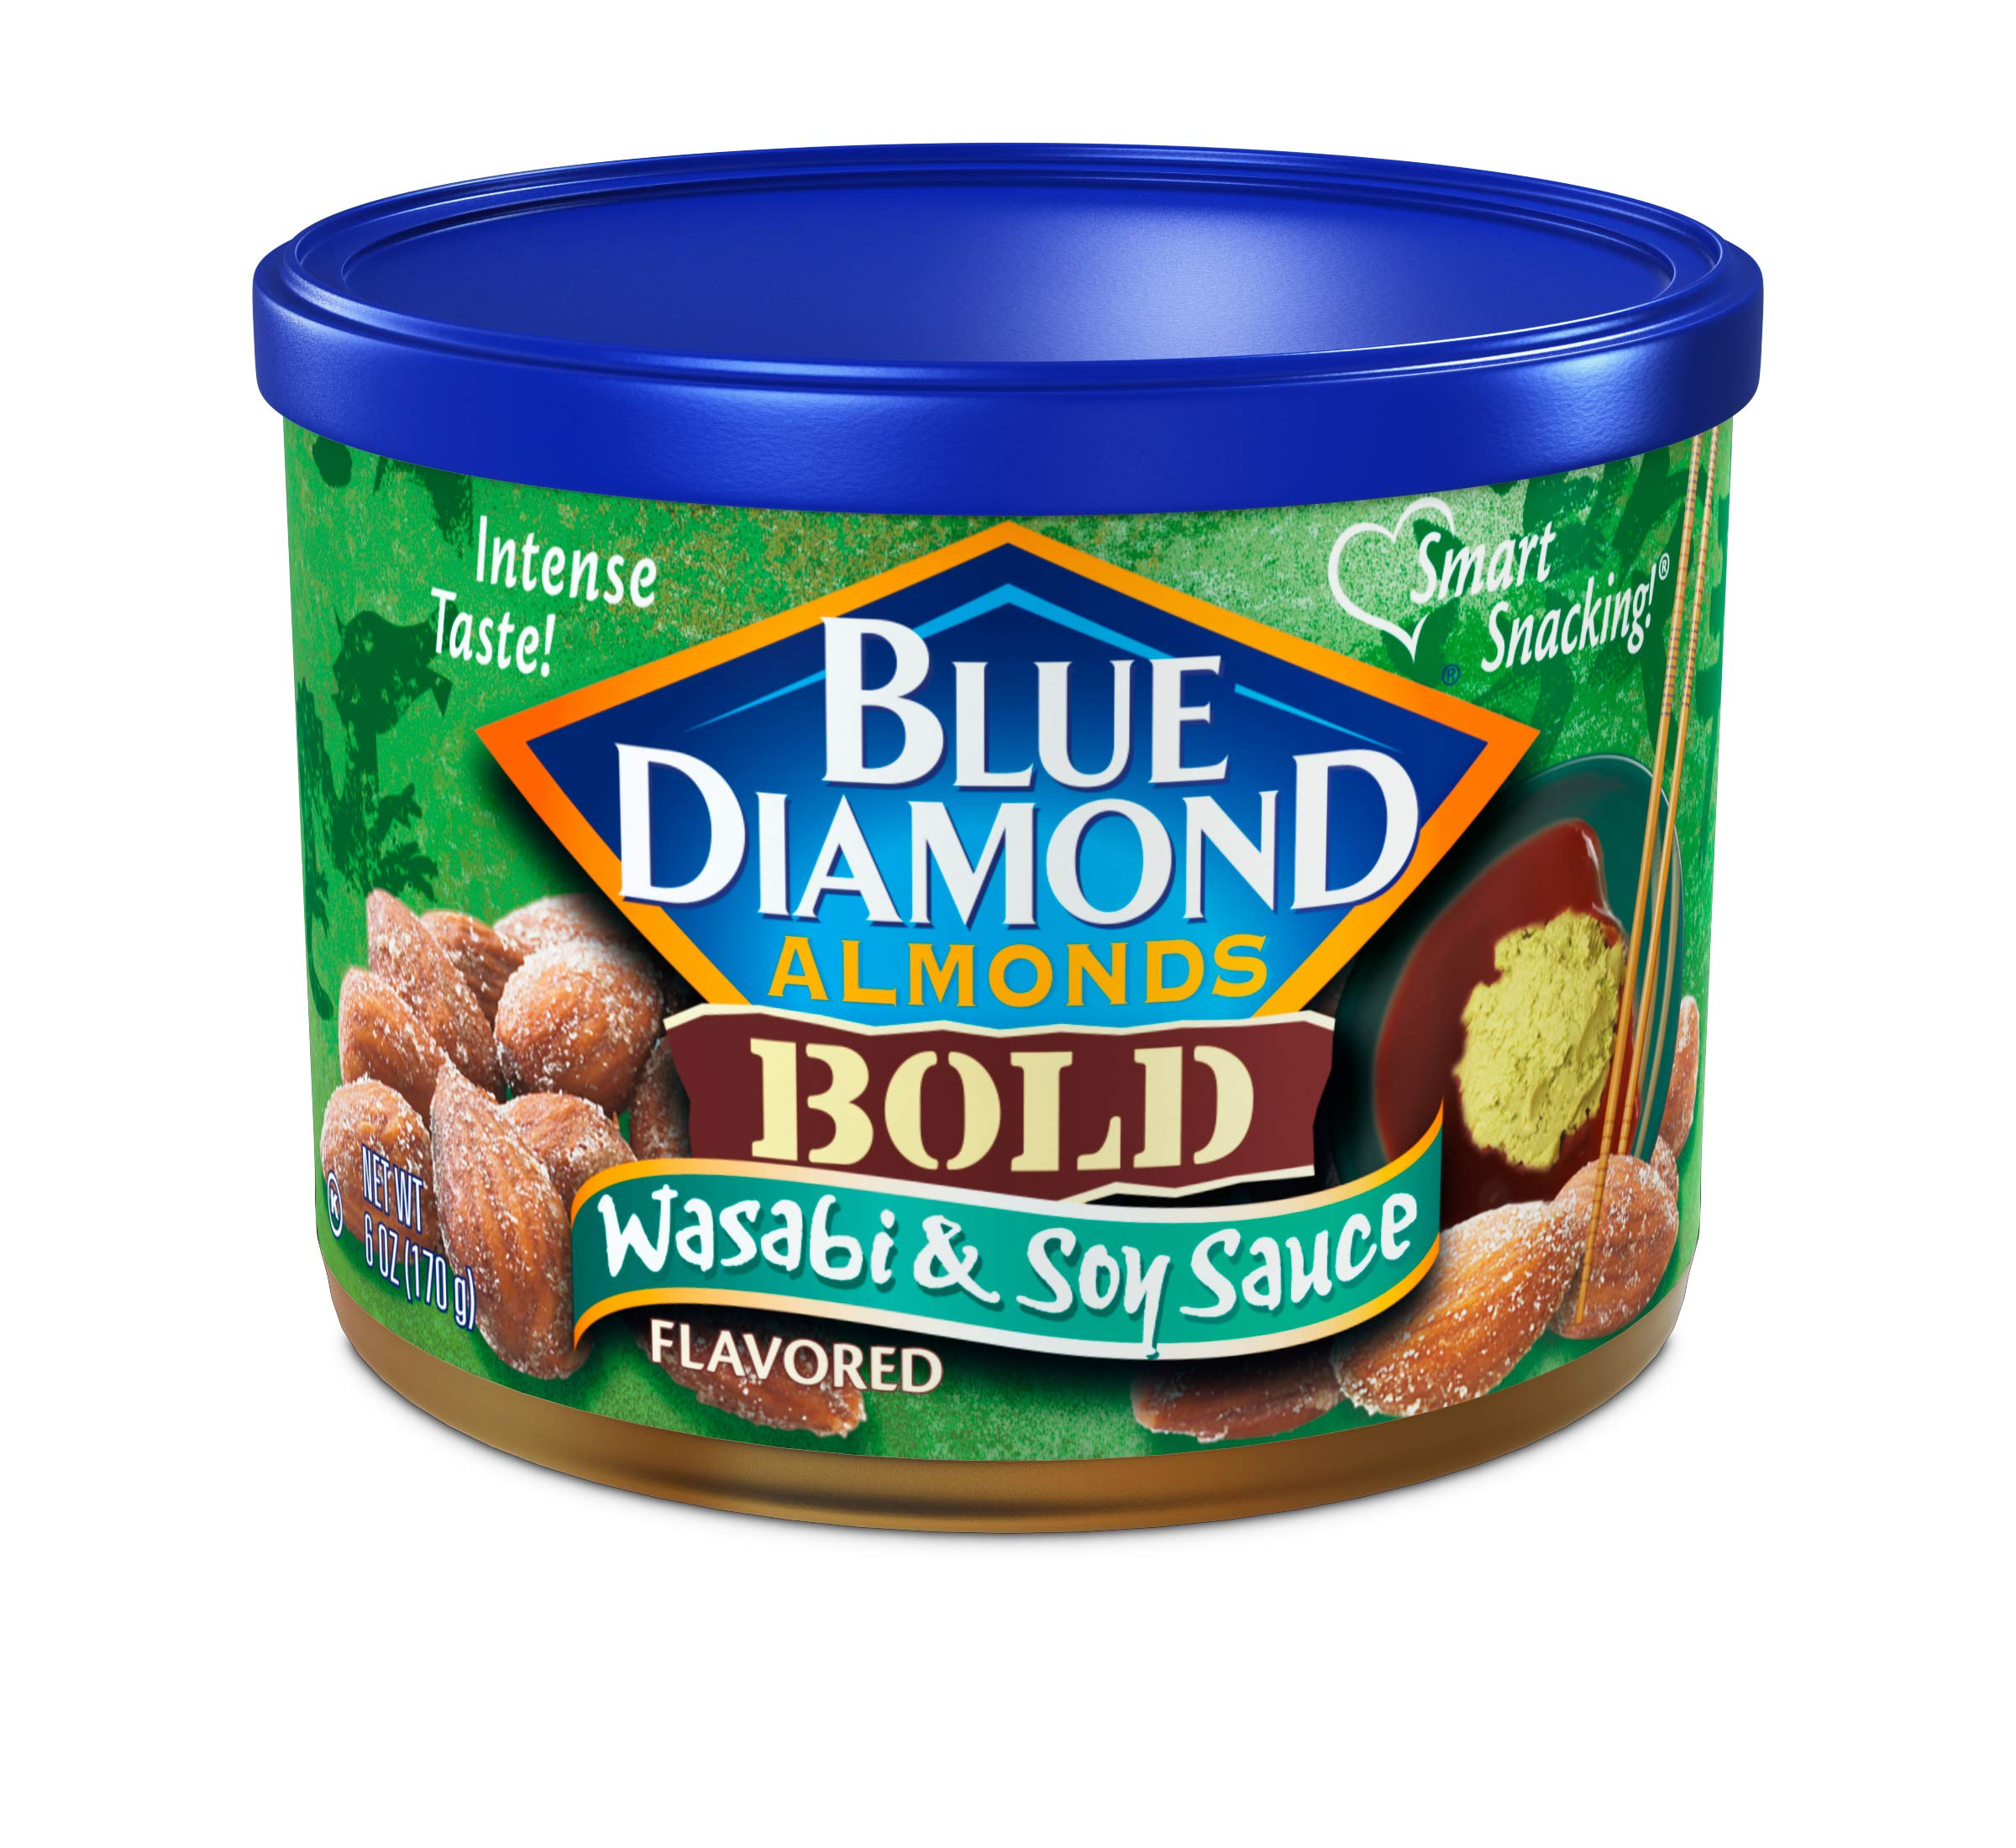 Blue Diamond Almonds, Bold Wasabi & Soy Sauce, 6 Ounce (Pack of 6)